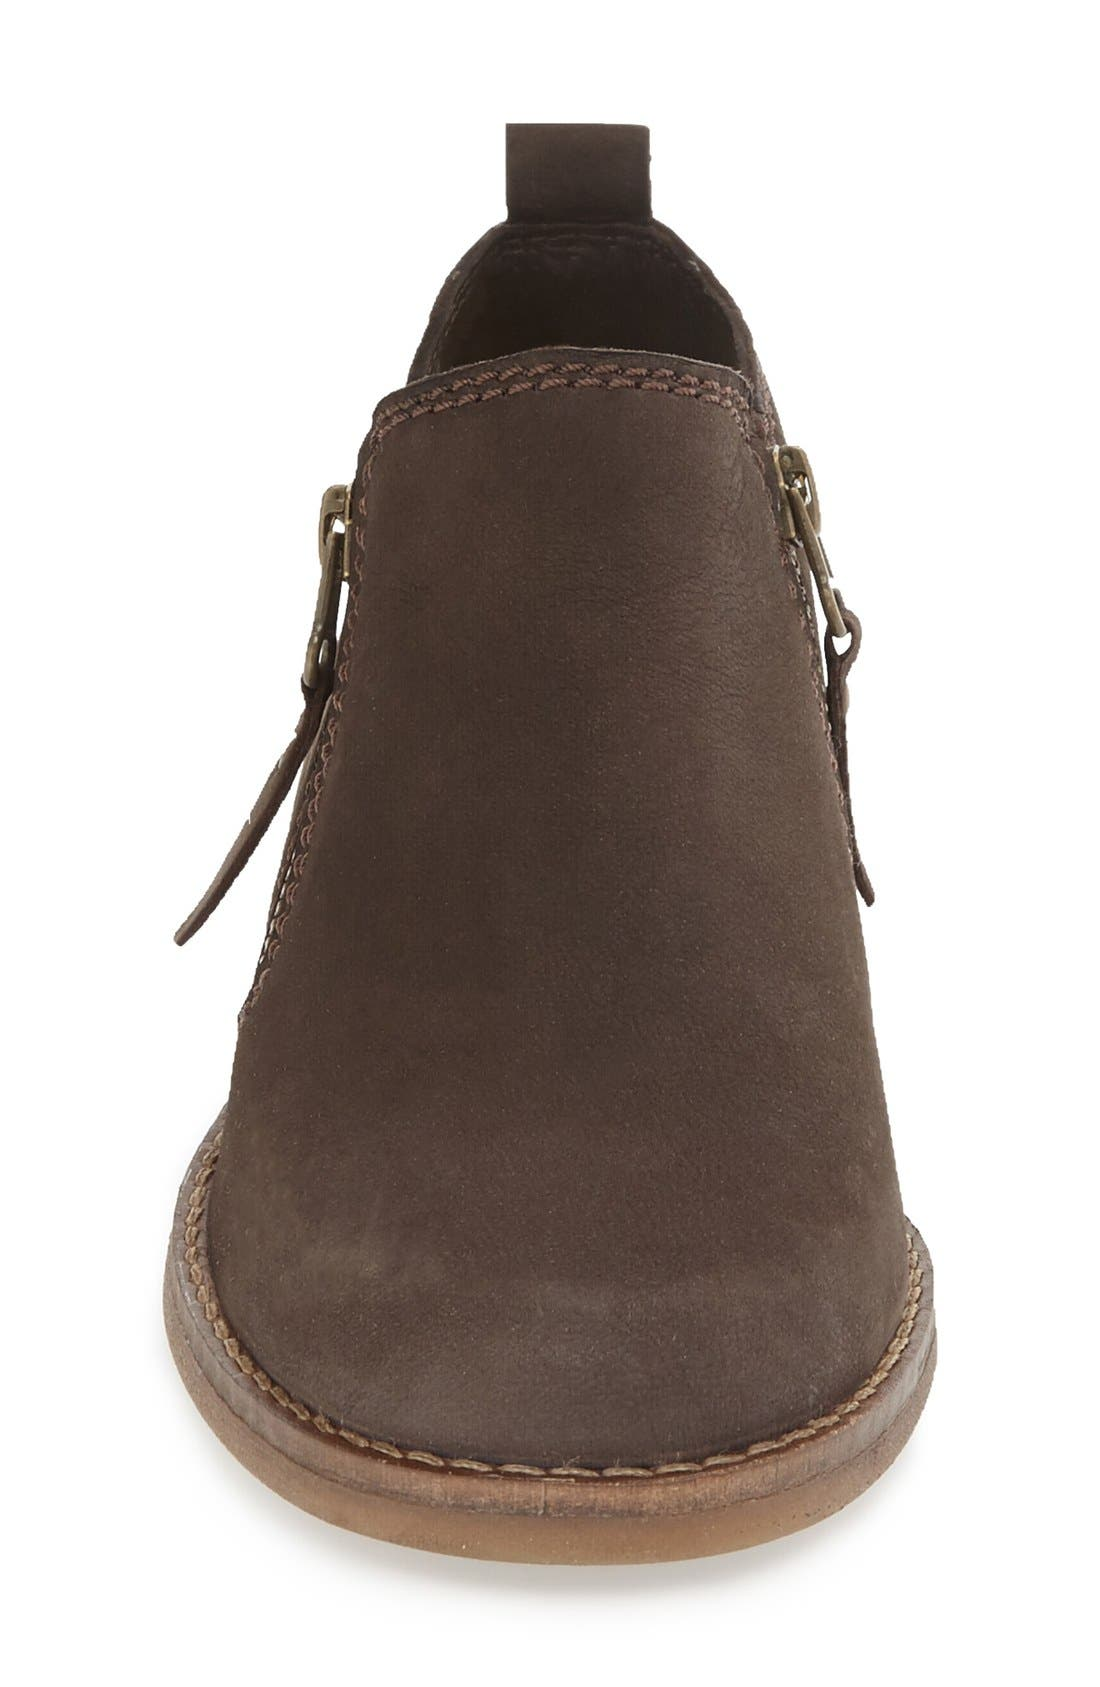 'Mazin Cayto' Bootie,                             Alternate thumbnail 3, color,                             Brown Nubuck Leather